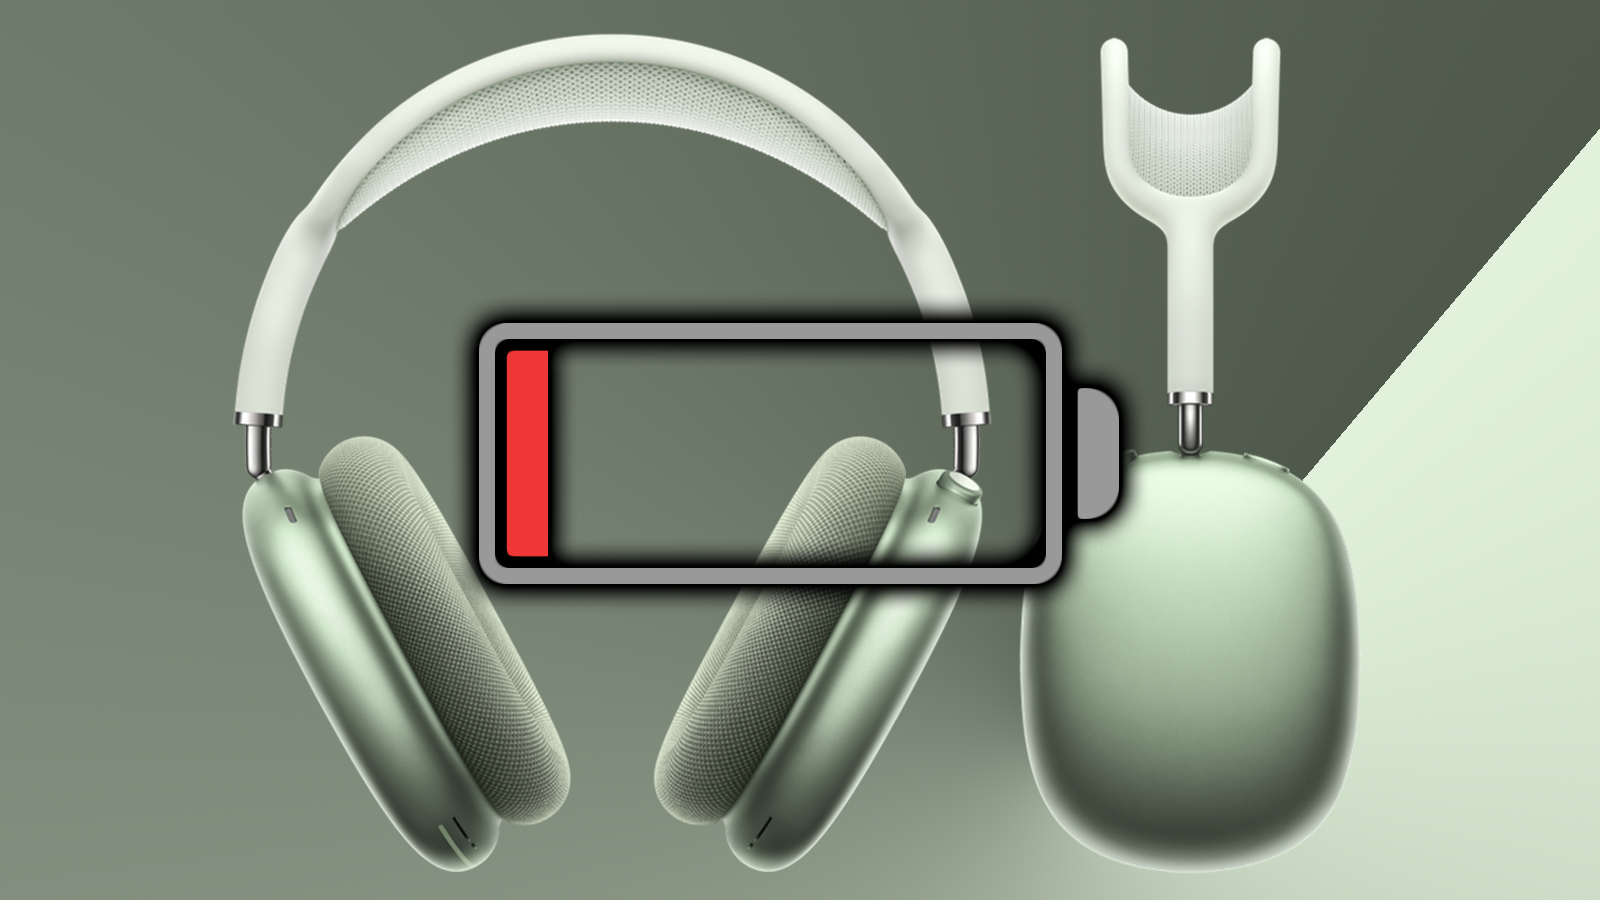 PSA: AirPods Max Battery Drain Is Real—Don't Buy Them (For Now)